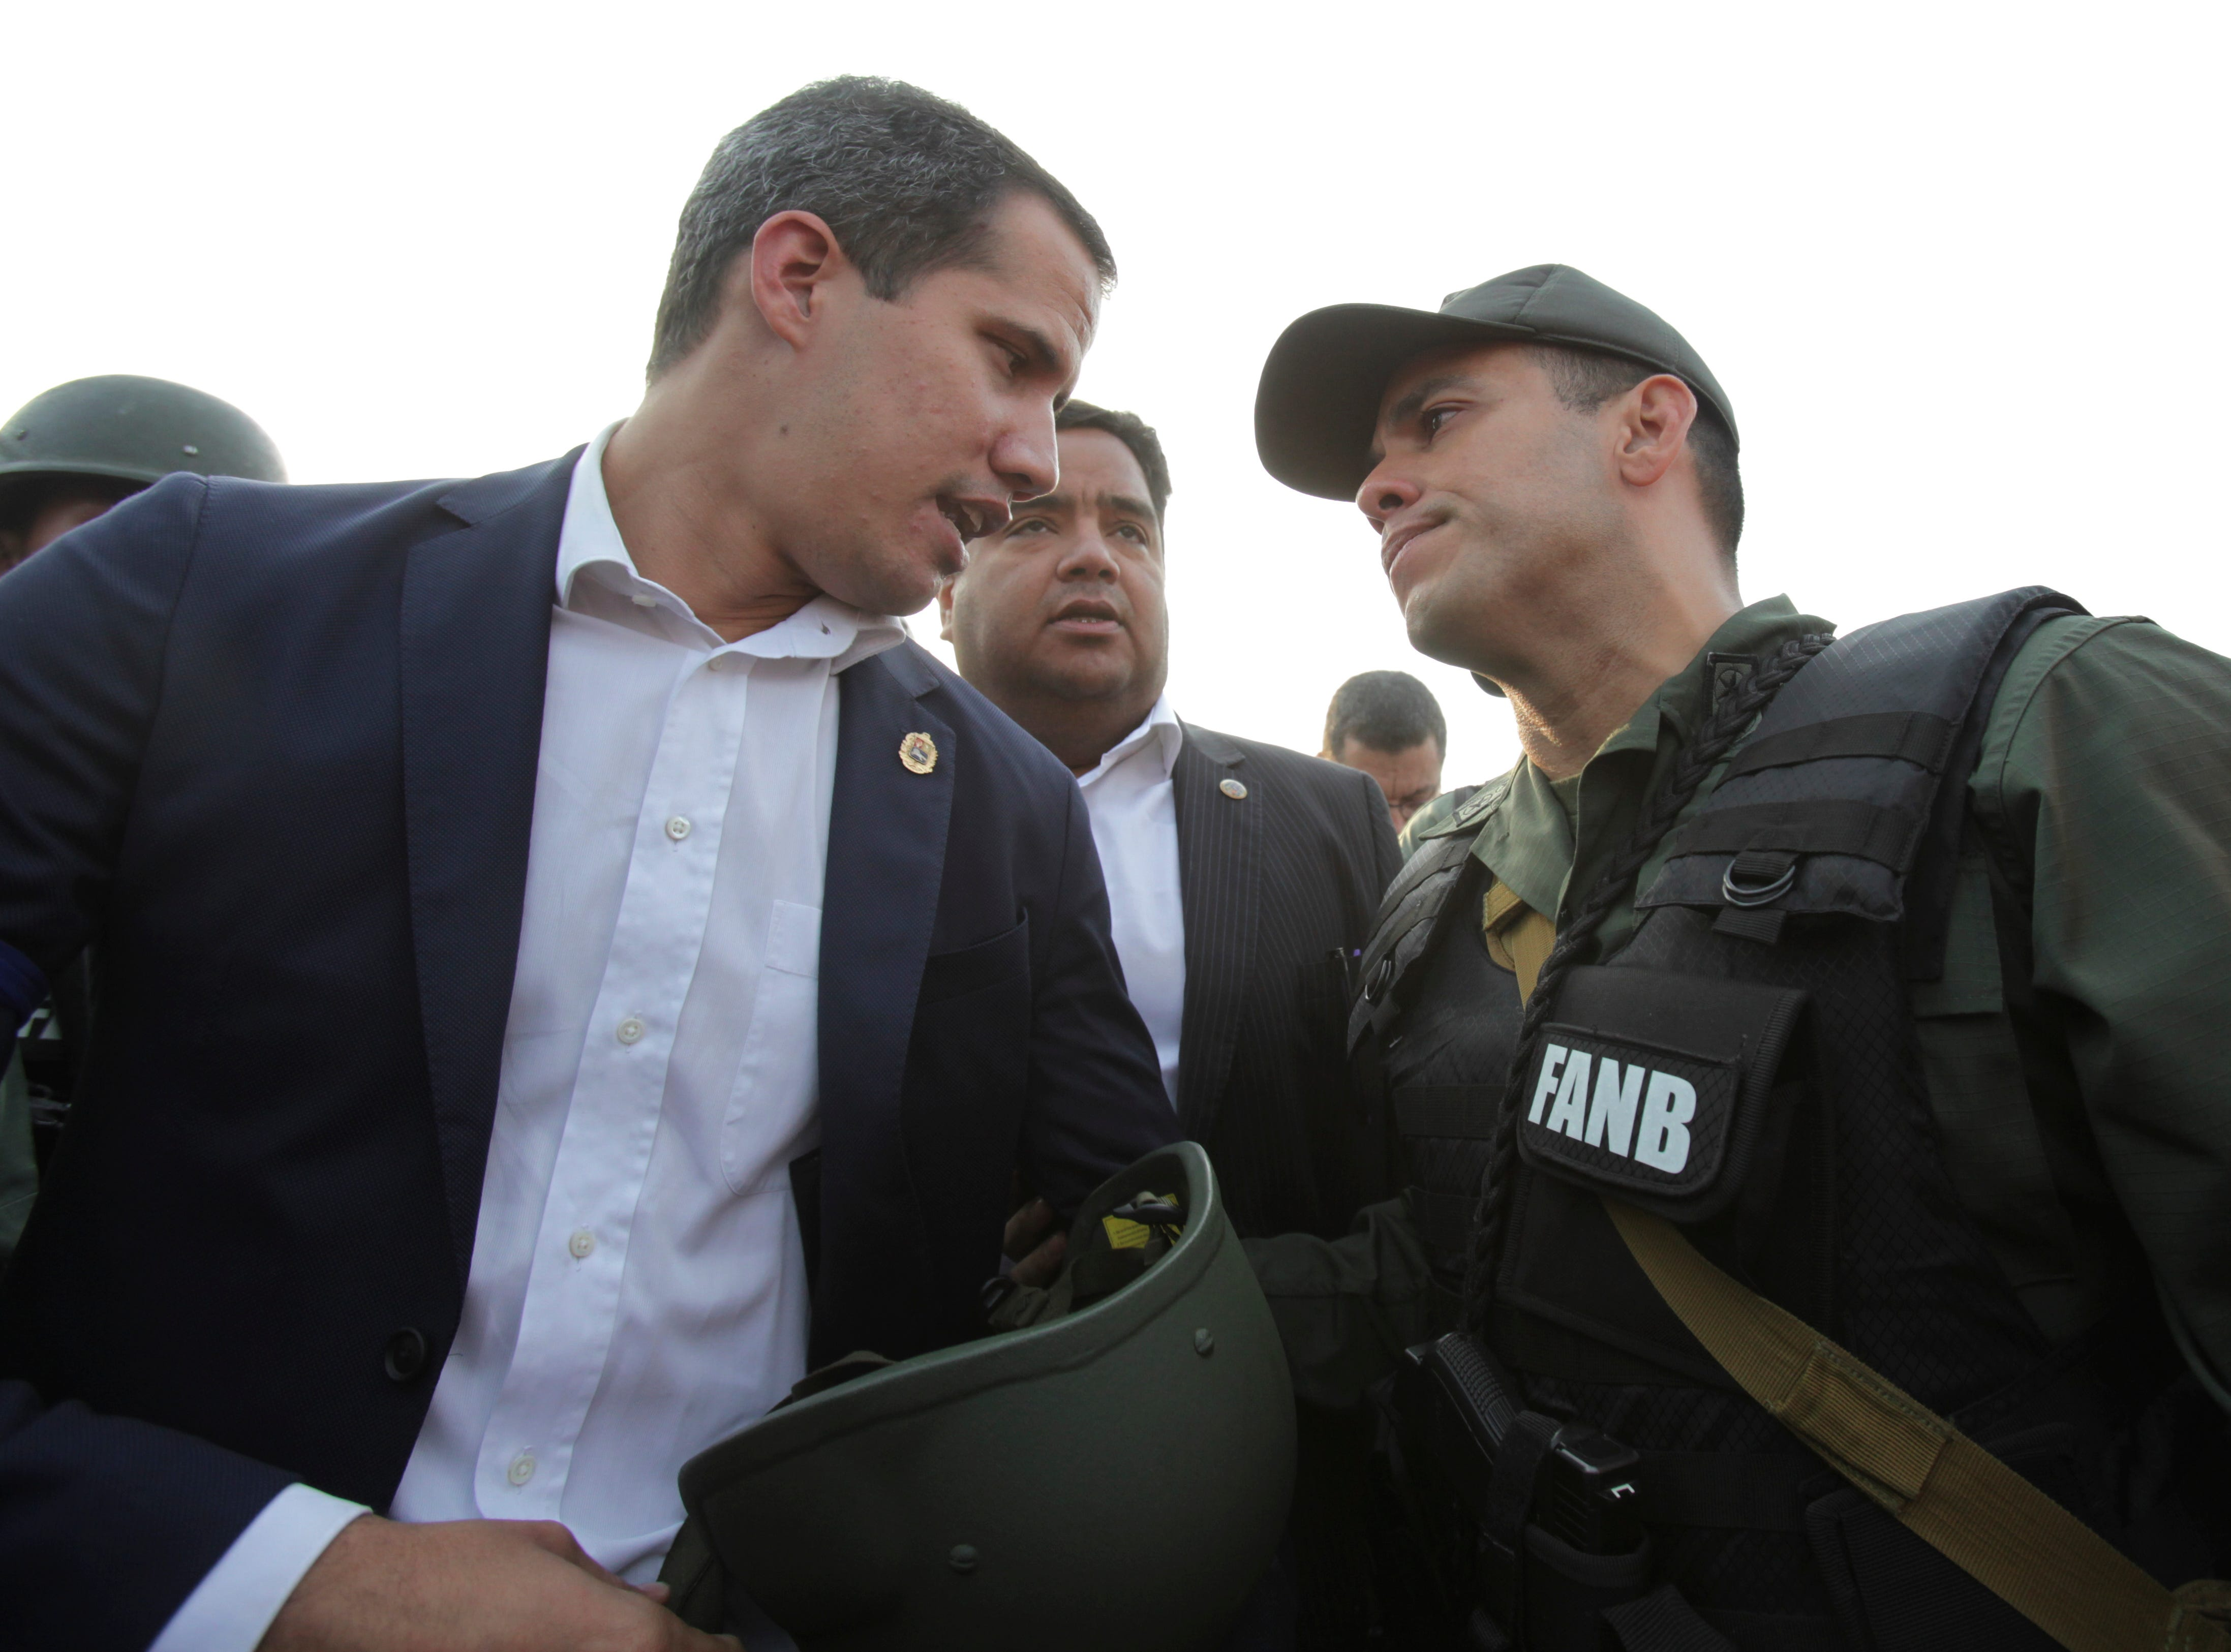 Venezuela's opposition leader and self proclaimed president Juan Guaido talks to an Army officer outside La Carlota air base in Caracas, Venezuela, Tuesday, April 30, 2019. Guaido took to the streets with a small contingent of armed soldiers and detained activist Leopoldo Lopez calling for a military uprising.